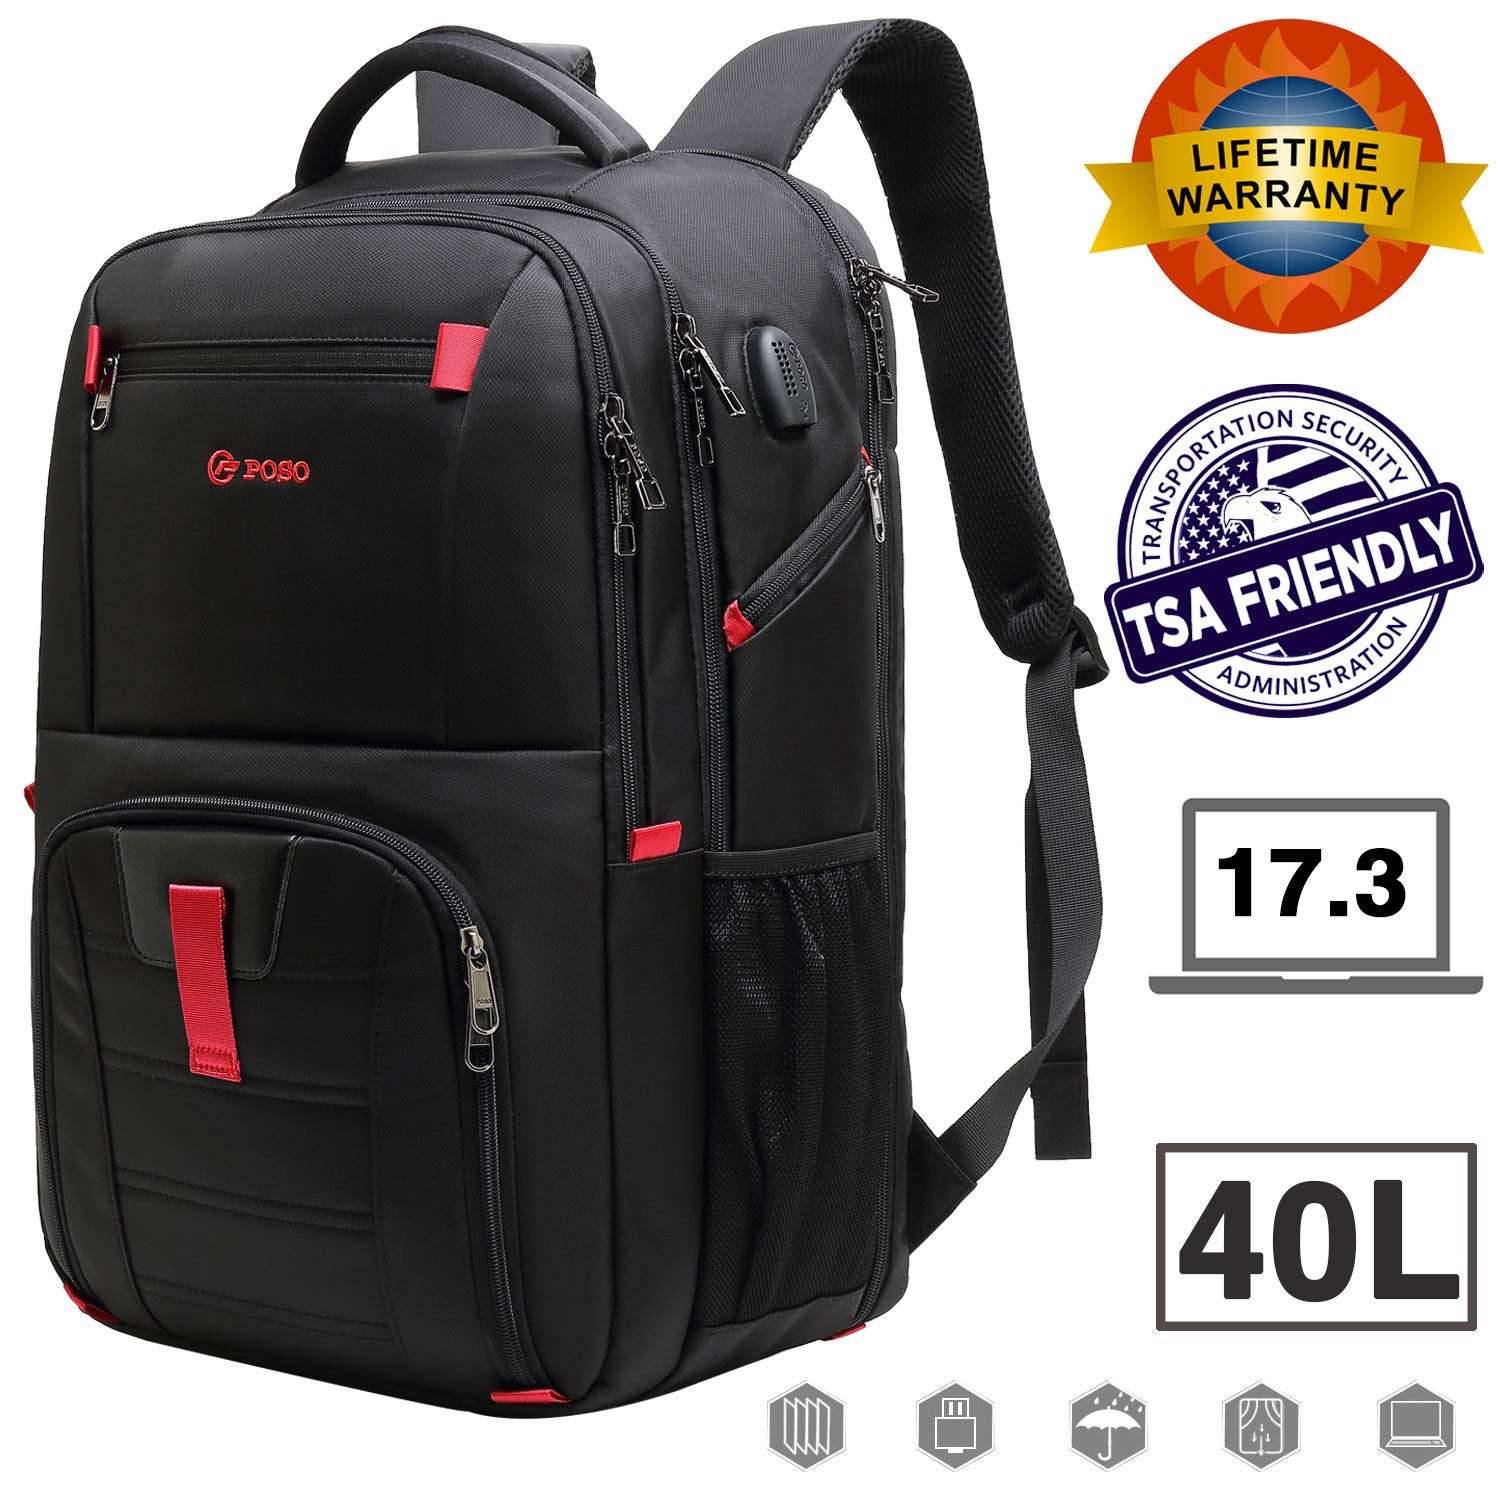 17.3 inch Laptop Backpack, Large Capacity Laptop Backpacks for Men & Women with USB Charging Port, TSA Checkpoint Friendly Waterproof Laptop Backpack, Business Travel Tablet Backpacks (Black)